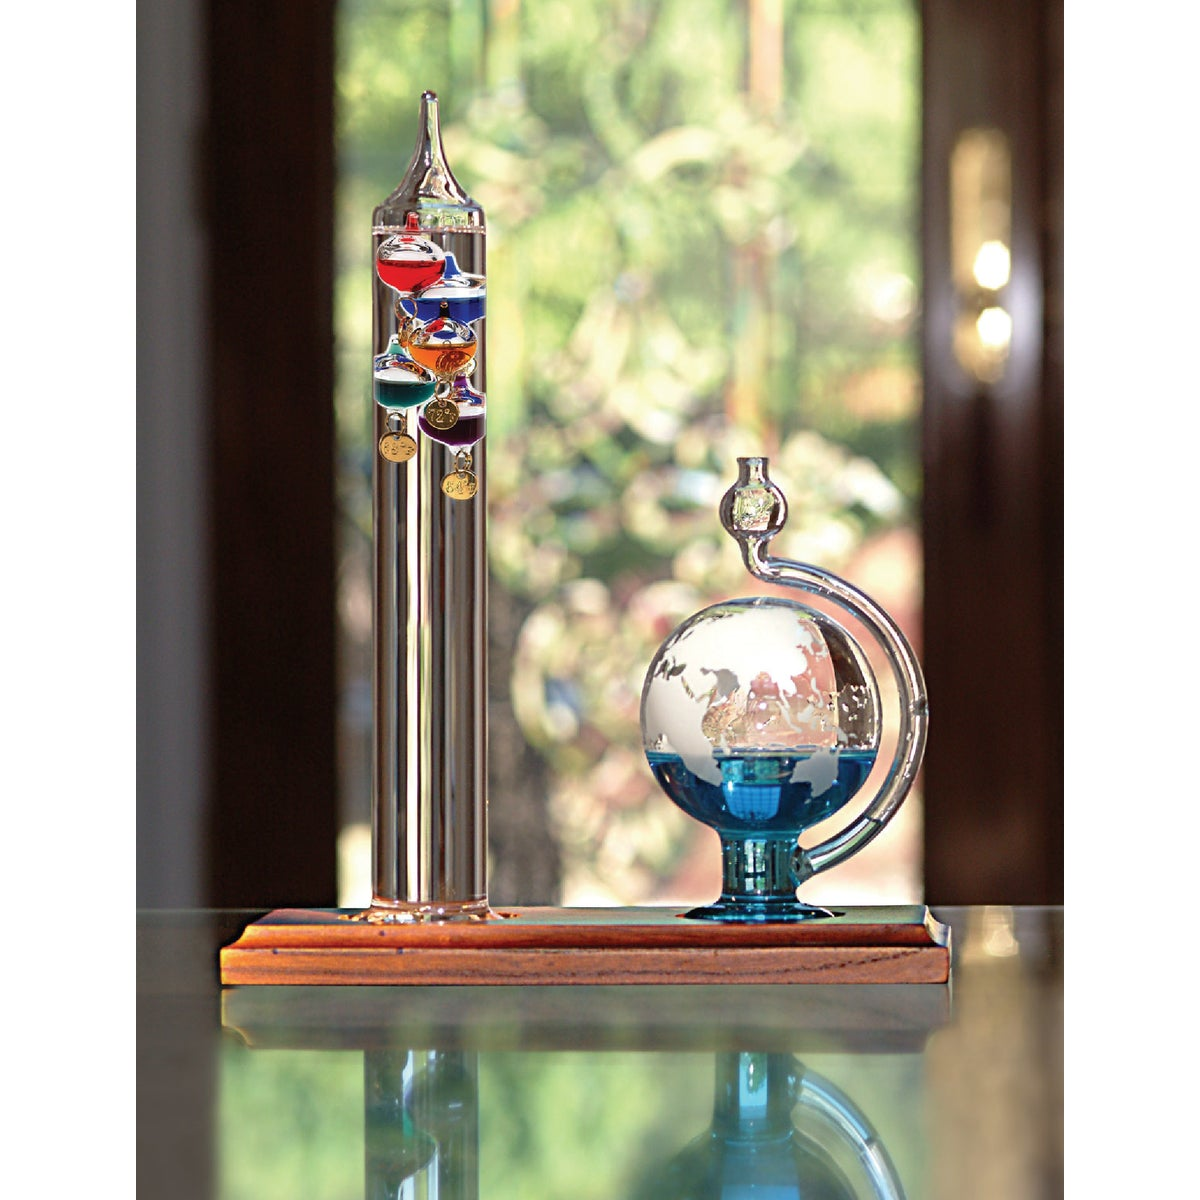 GALILEO BARO/THERMOMETER